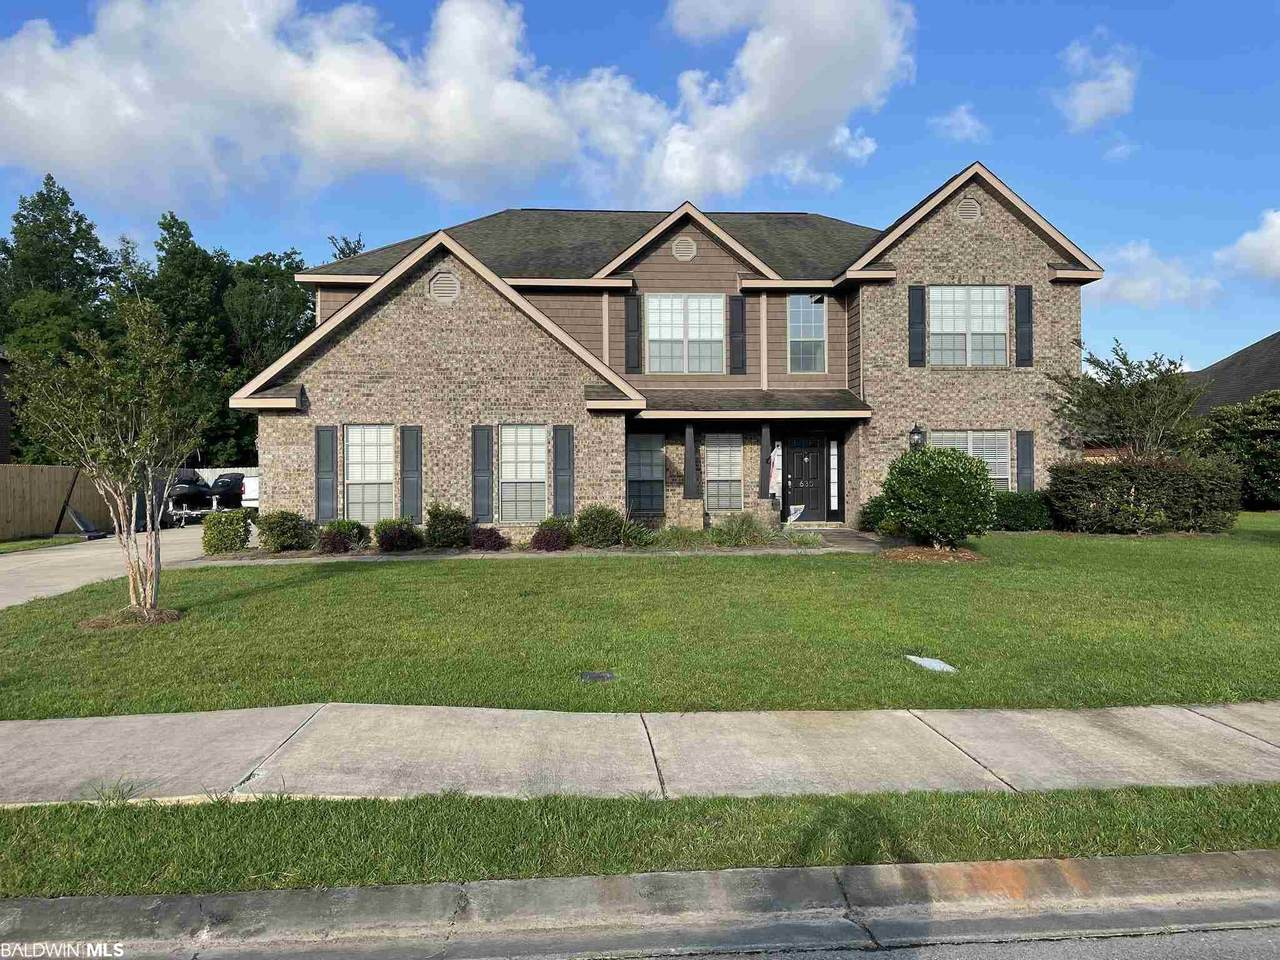 630 Weeping Willow Street - Photo 1